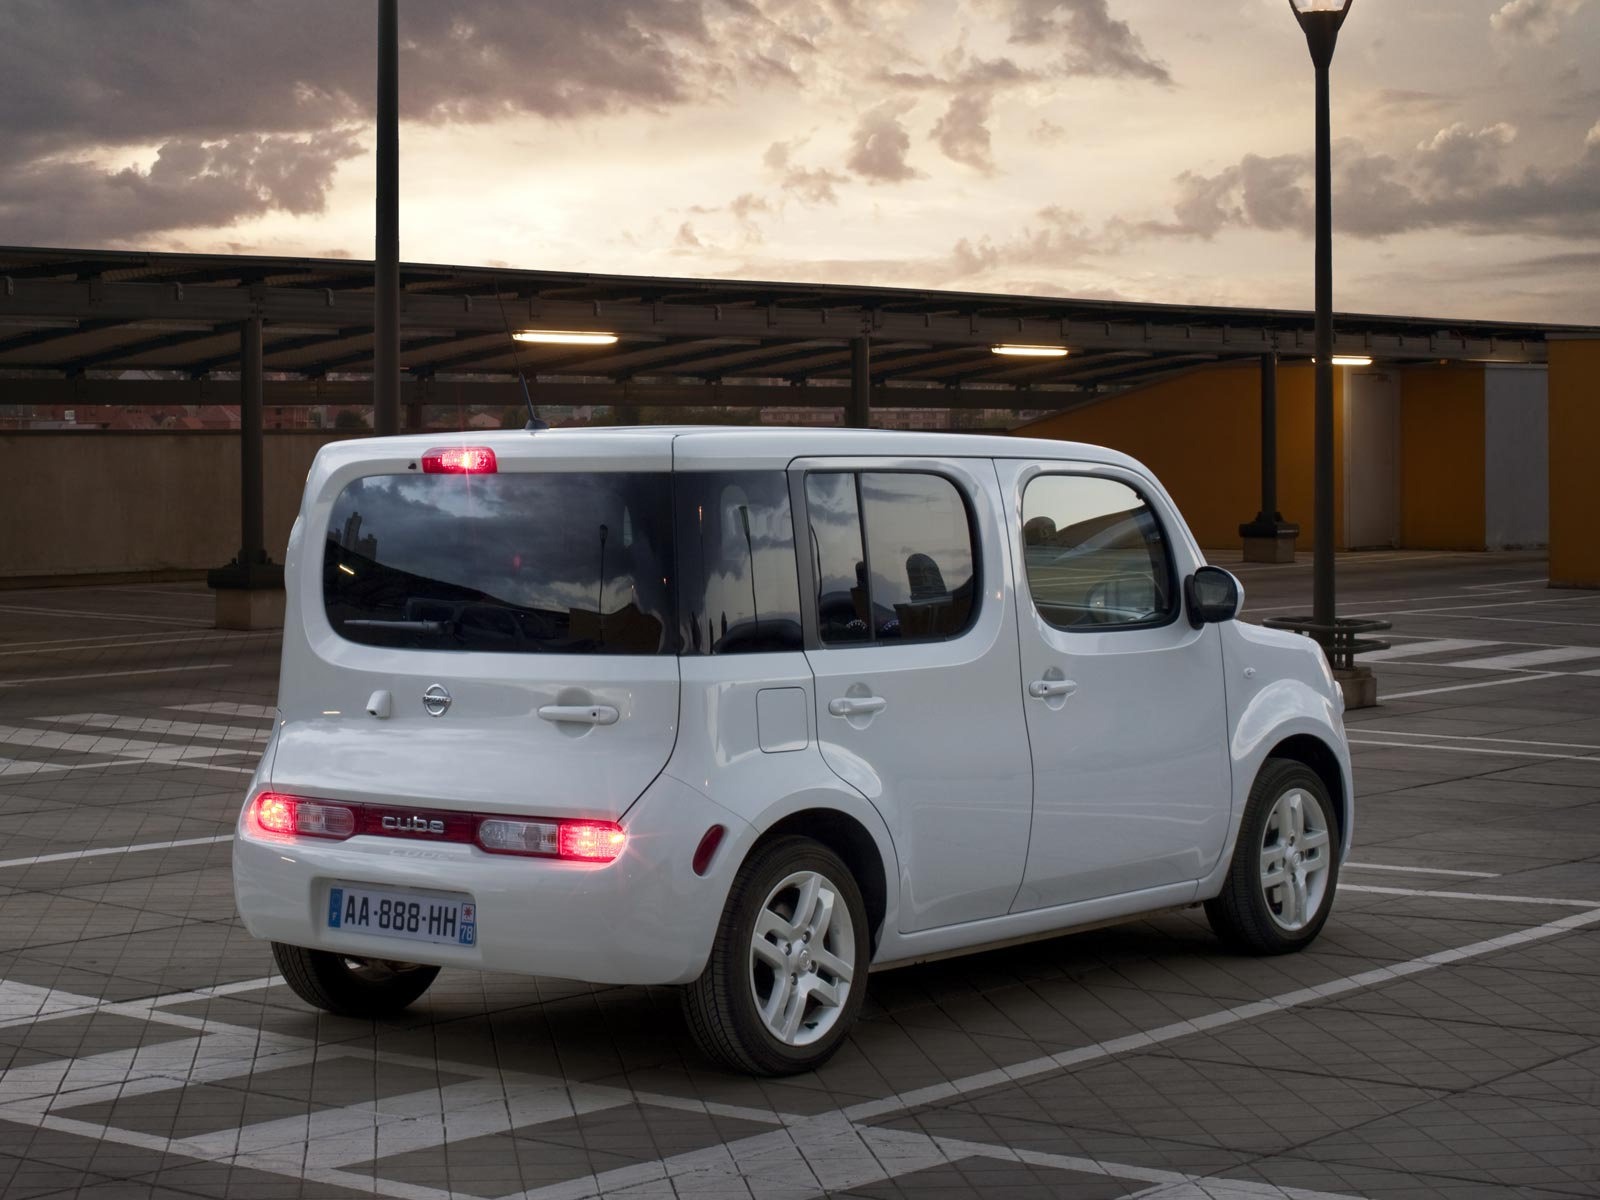 2008 nissan cube autoguru. Black Bedroom Furniture Sets. Home Design Ideas